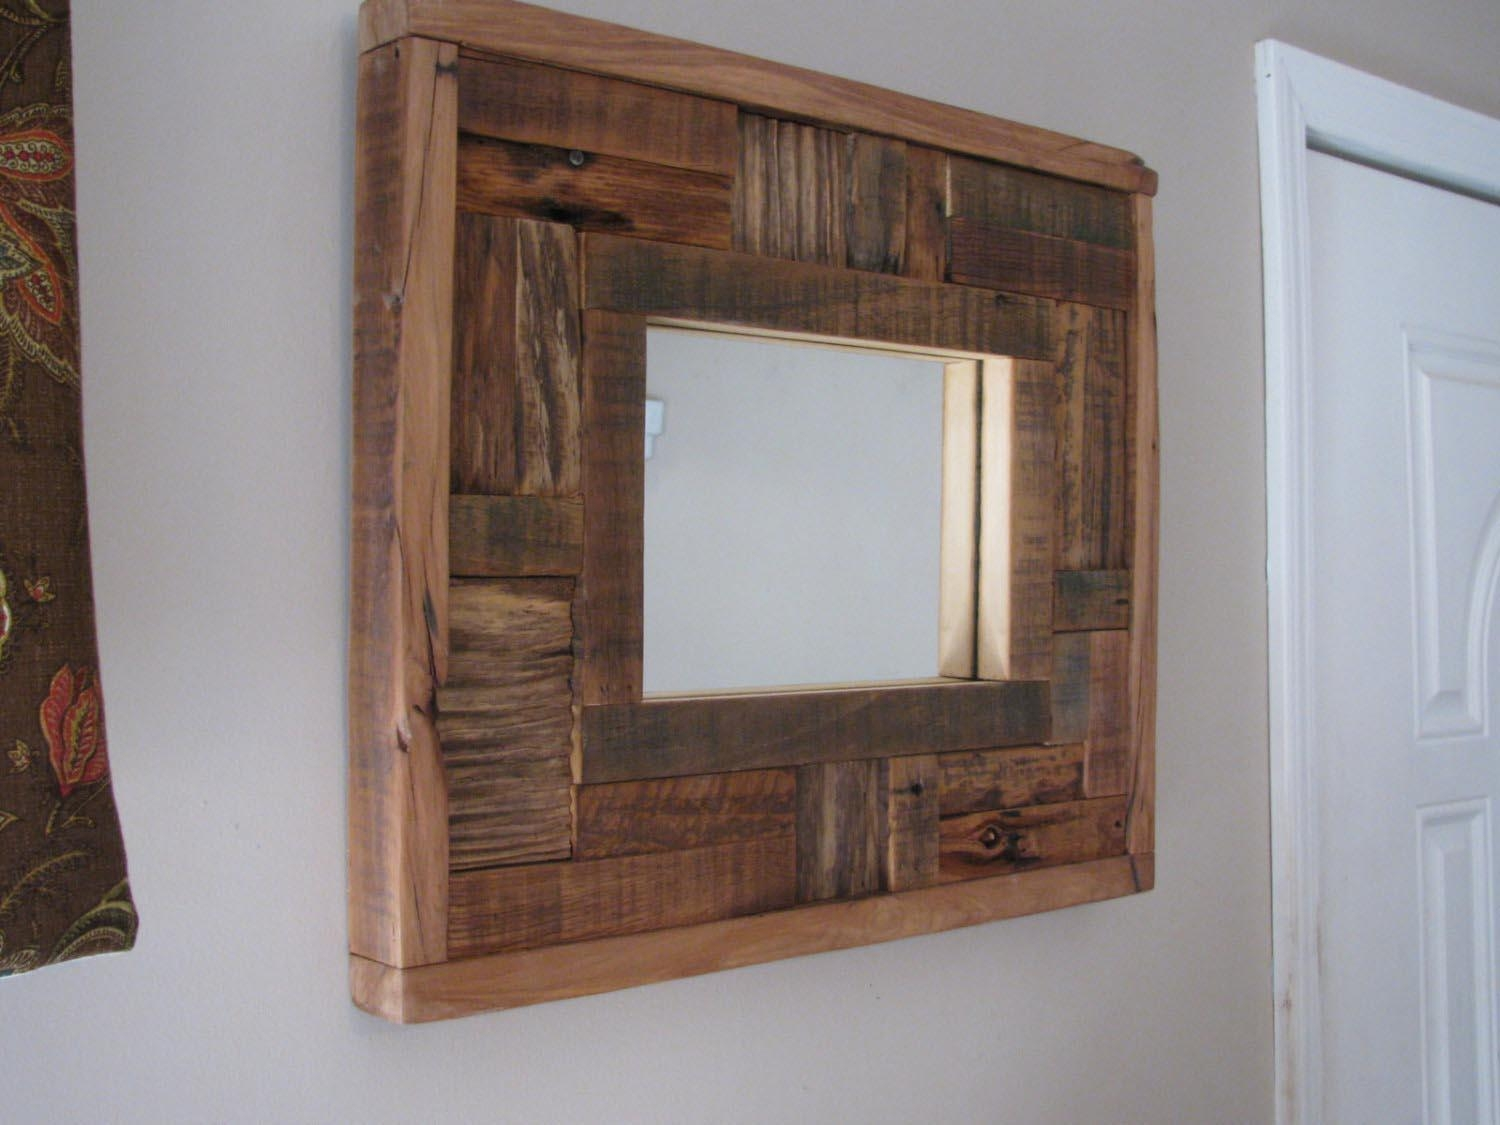 Beech Wood Framed Mirrors | Best Decor Things Regarding Beech Wood Framed Mirrors (Image 2 of 20)